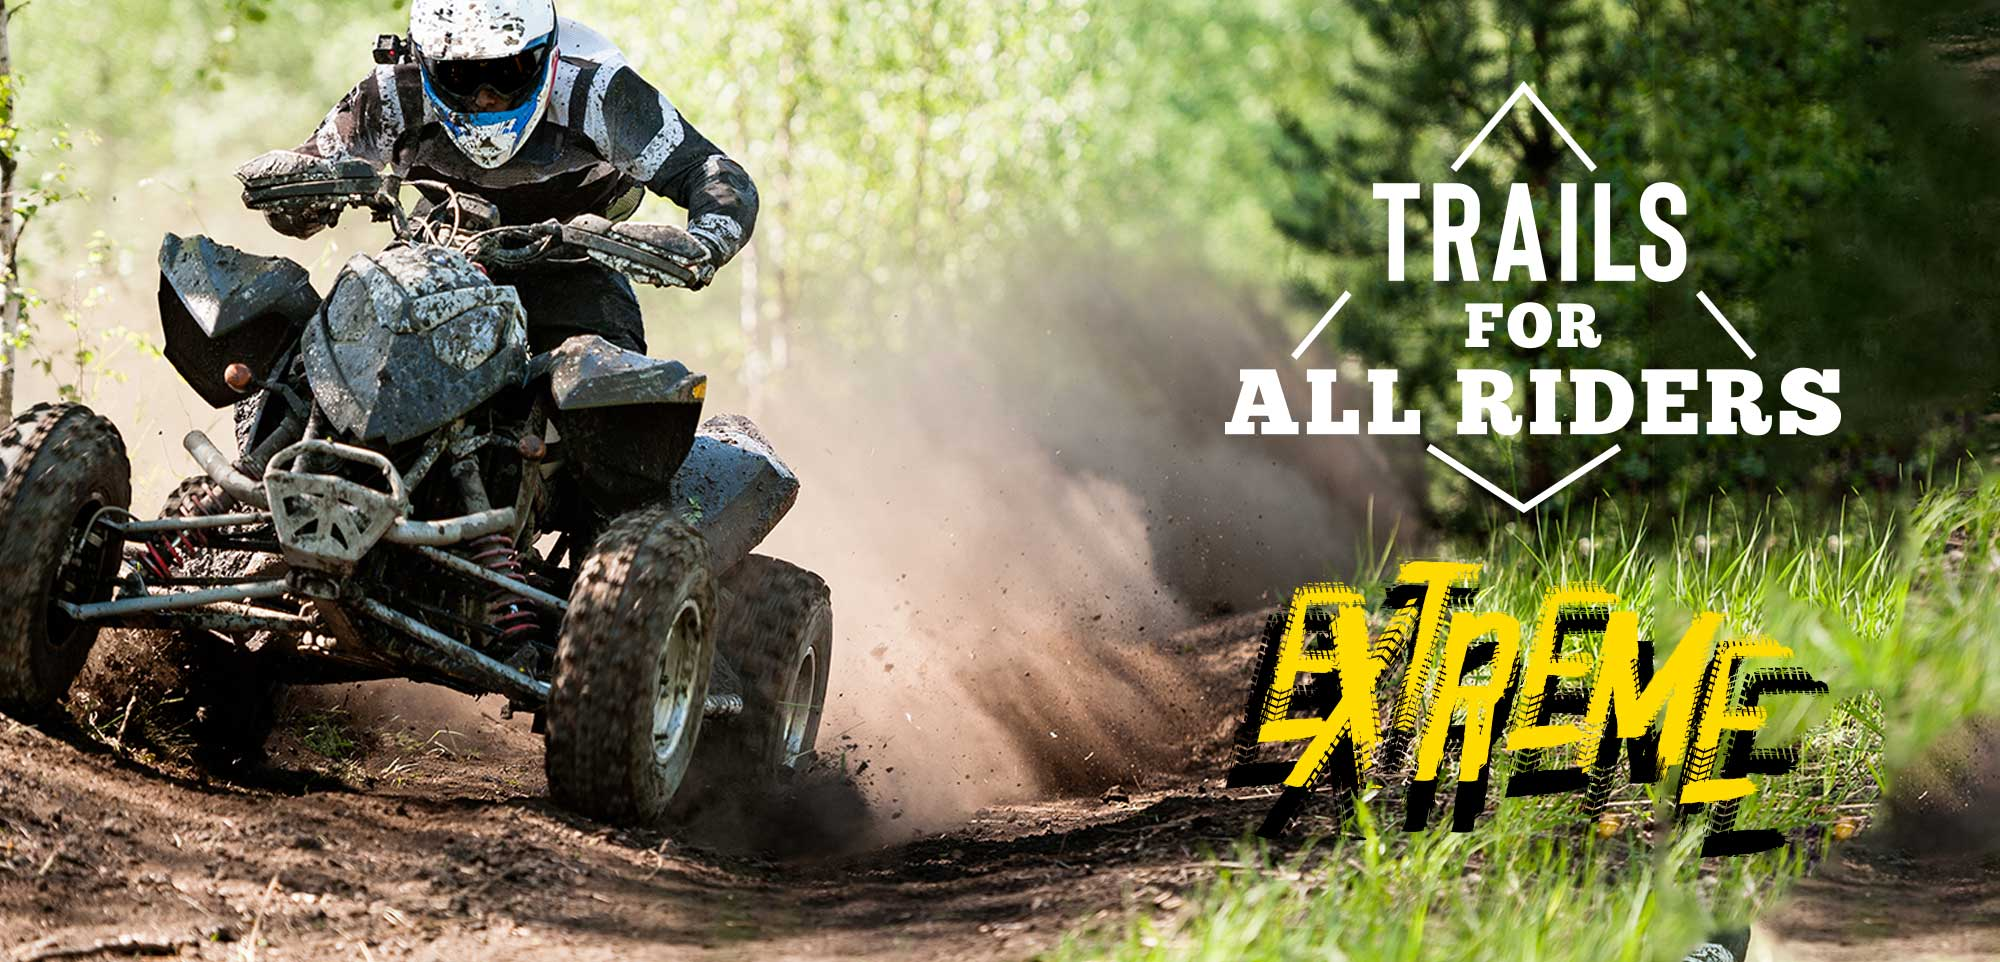 Trails for all riders